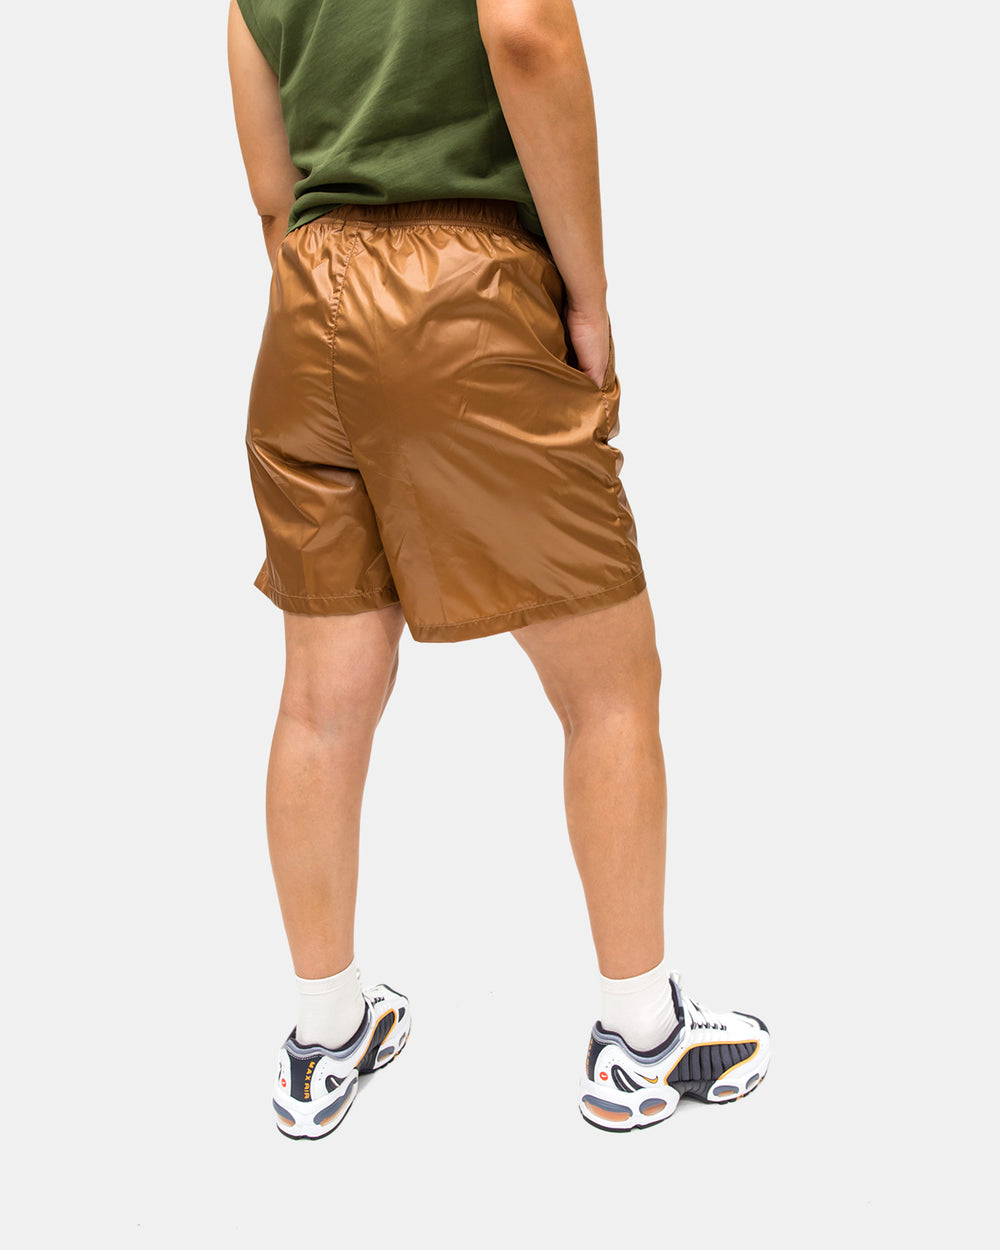 Stussy - Women's Langley Shiny Baggy Short (Tan)